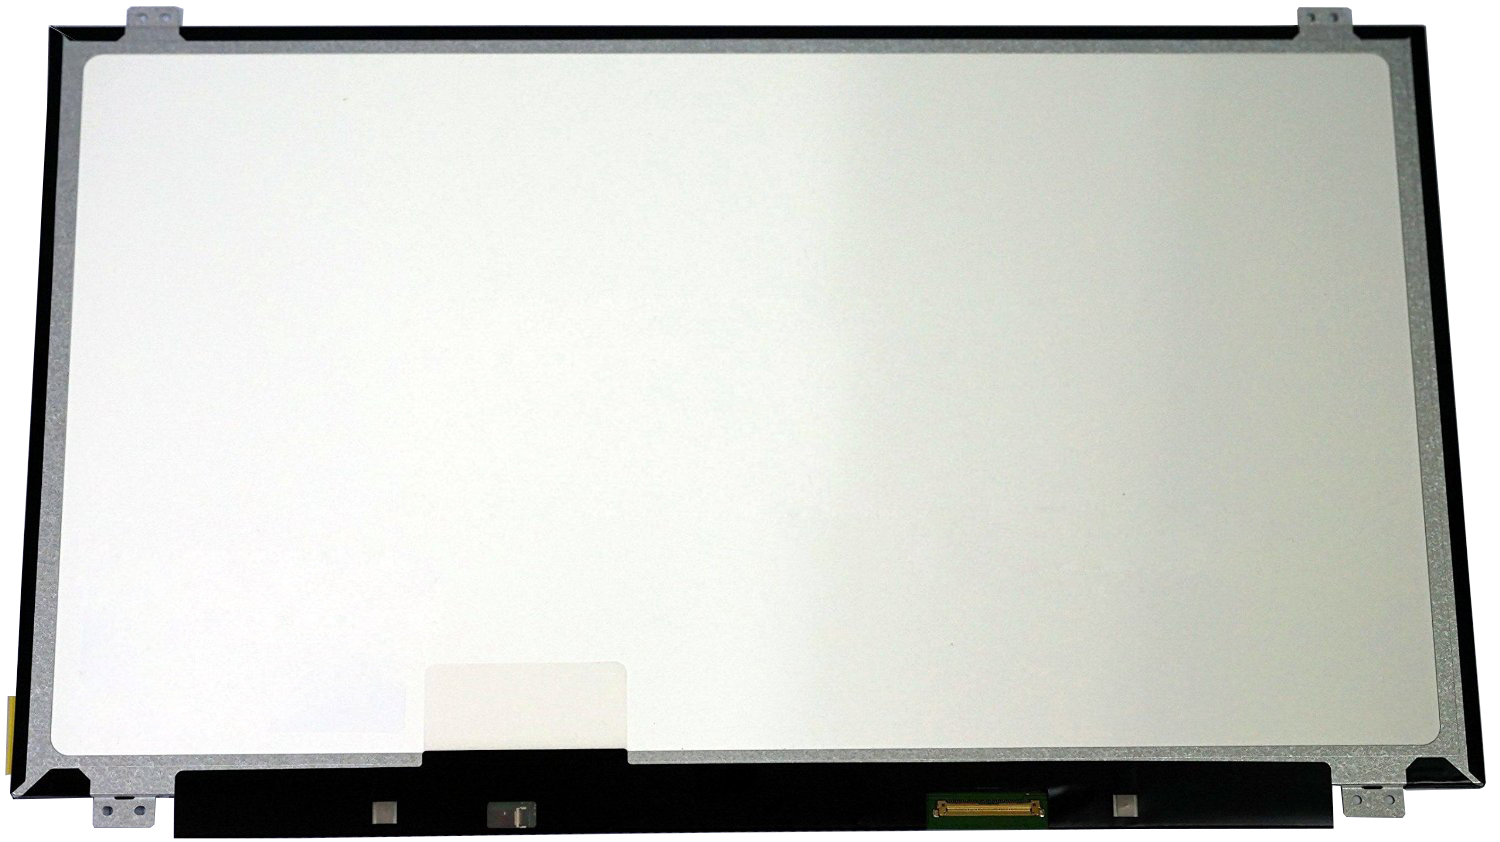 quying laptop lcd screen for dell latitude e5530 e6520 e6530 series 15 6 inch 1920x1080 40pin tk QuYing Laptop LCD Screen for Dell ALIENWARE 14 (14.0 inch 1920x1080 30pin IPS N)